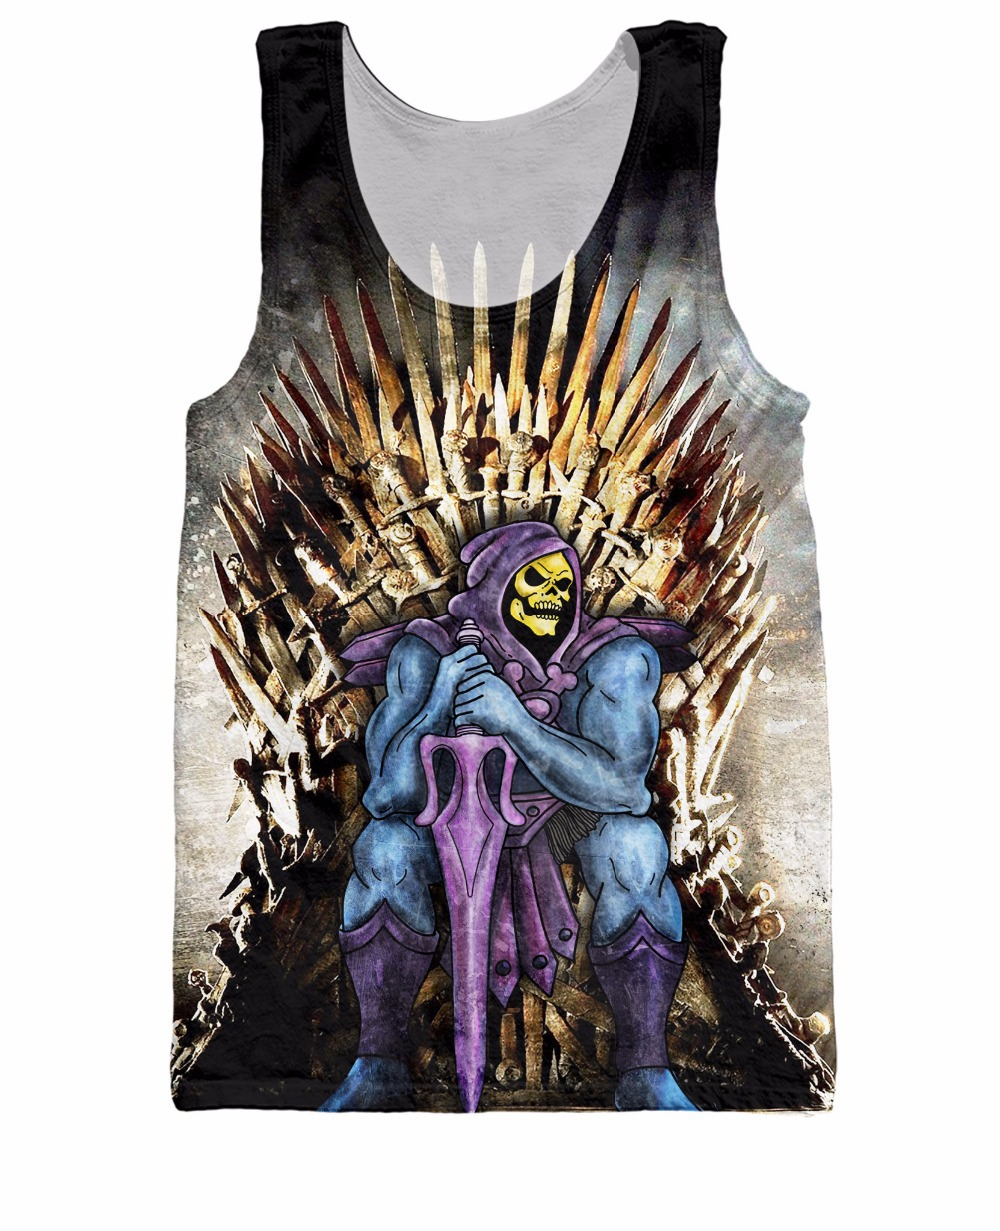 Unisex Women Basketball Jersey Skeletor Conquers the Realm Tank Top Cartoon He-Man and the Masters of the Universe Vest tees(China (Mainland))